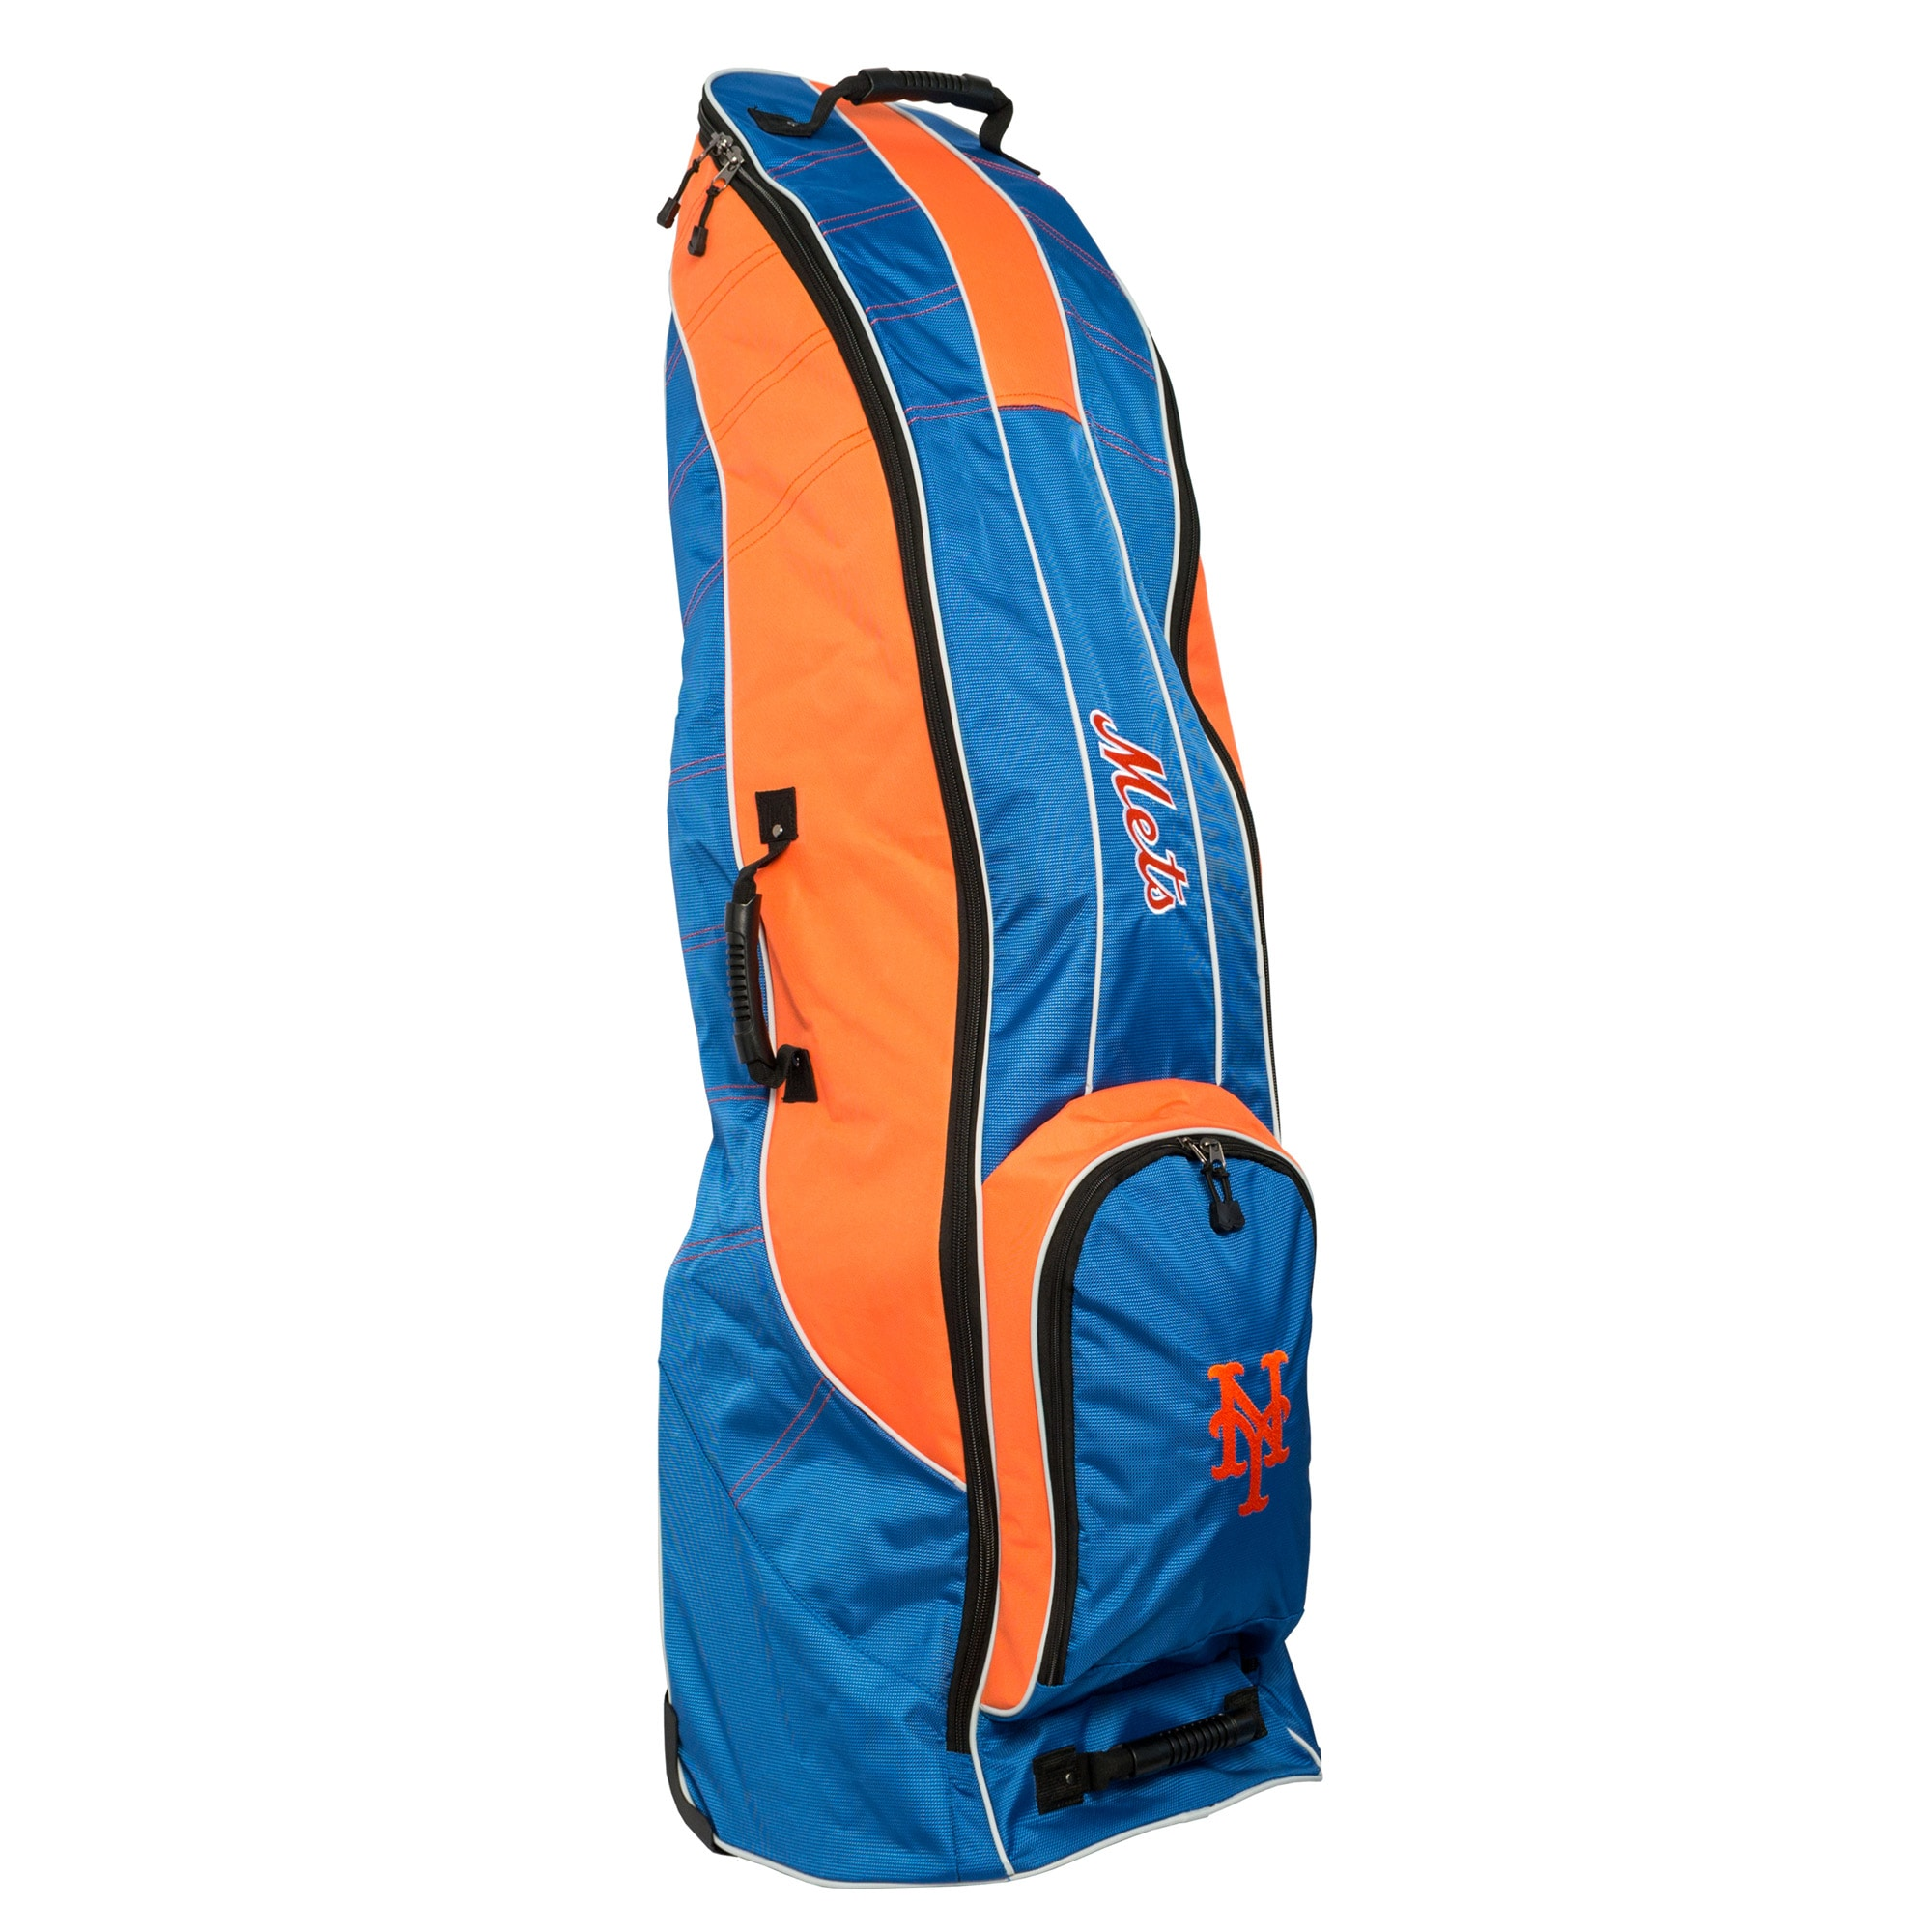 New York Mets Team Golf Travel Bag